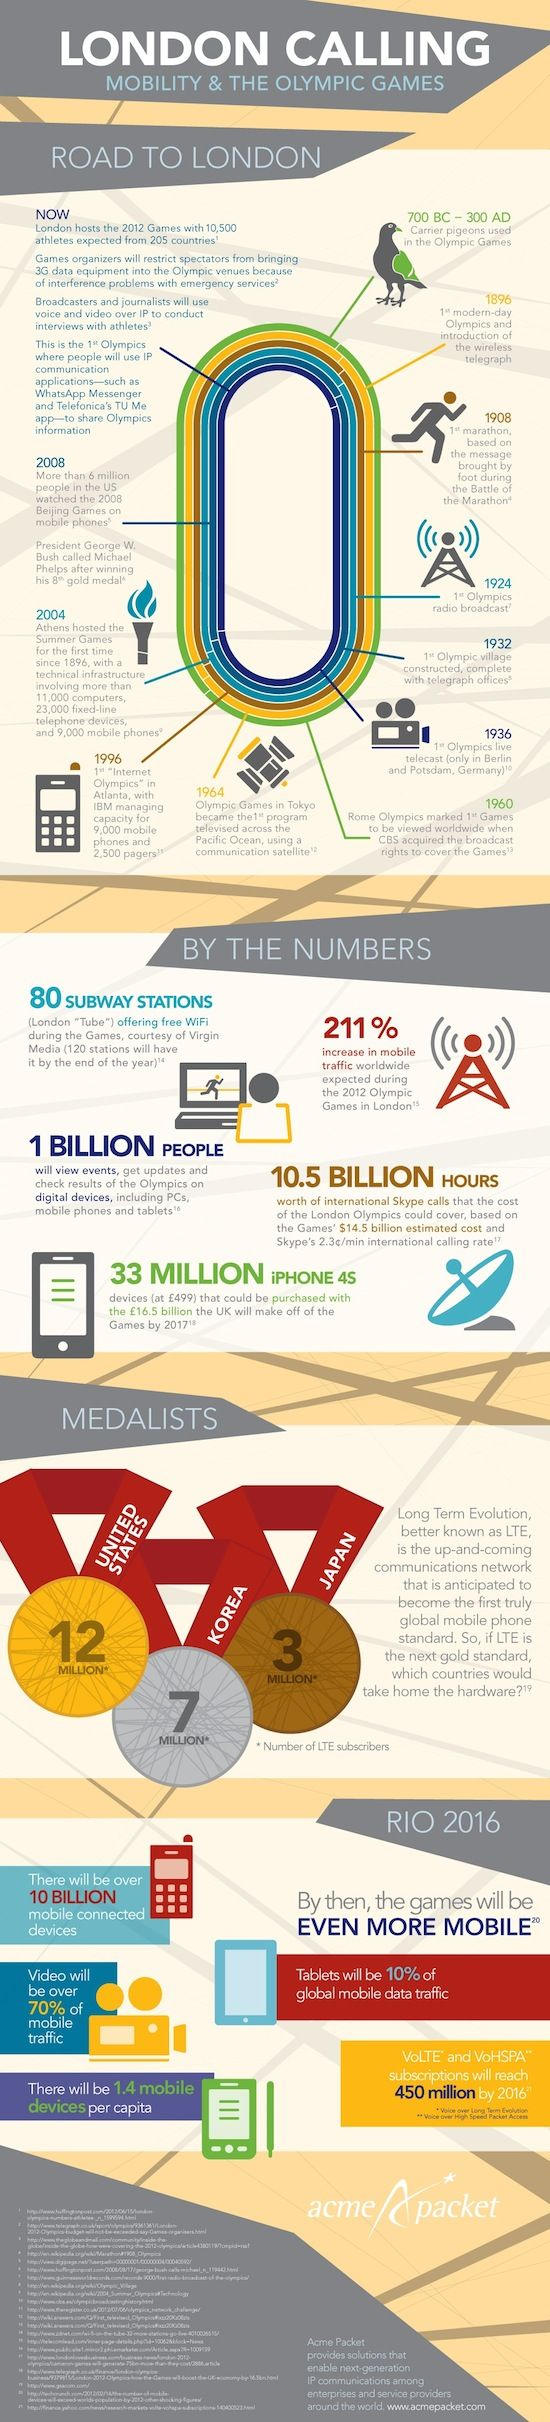 londoncalling_infographic_press